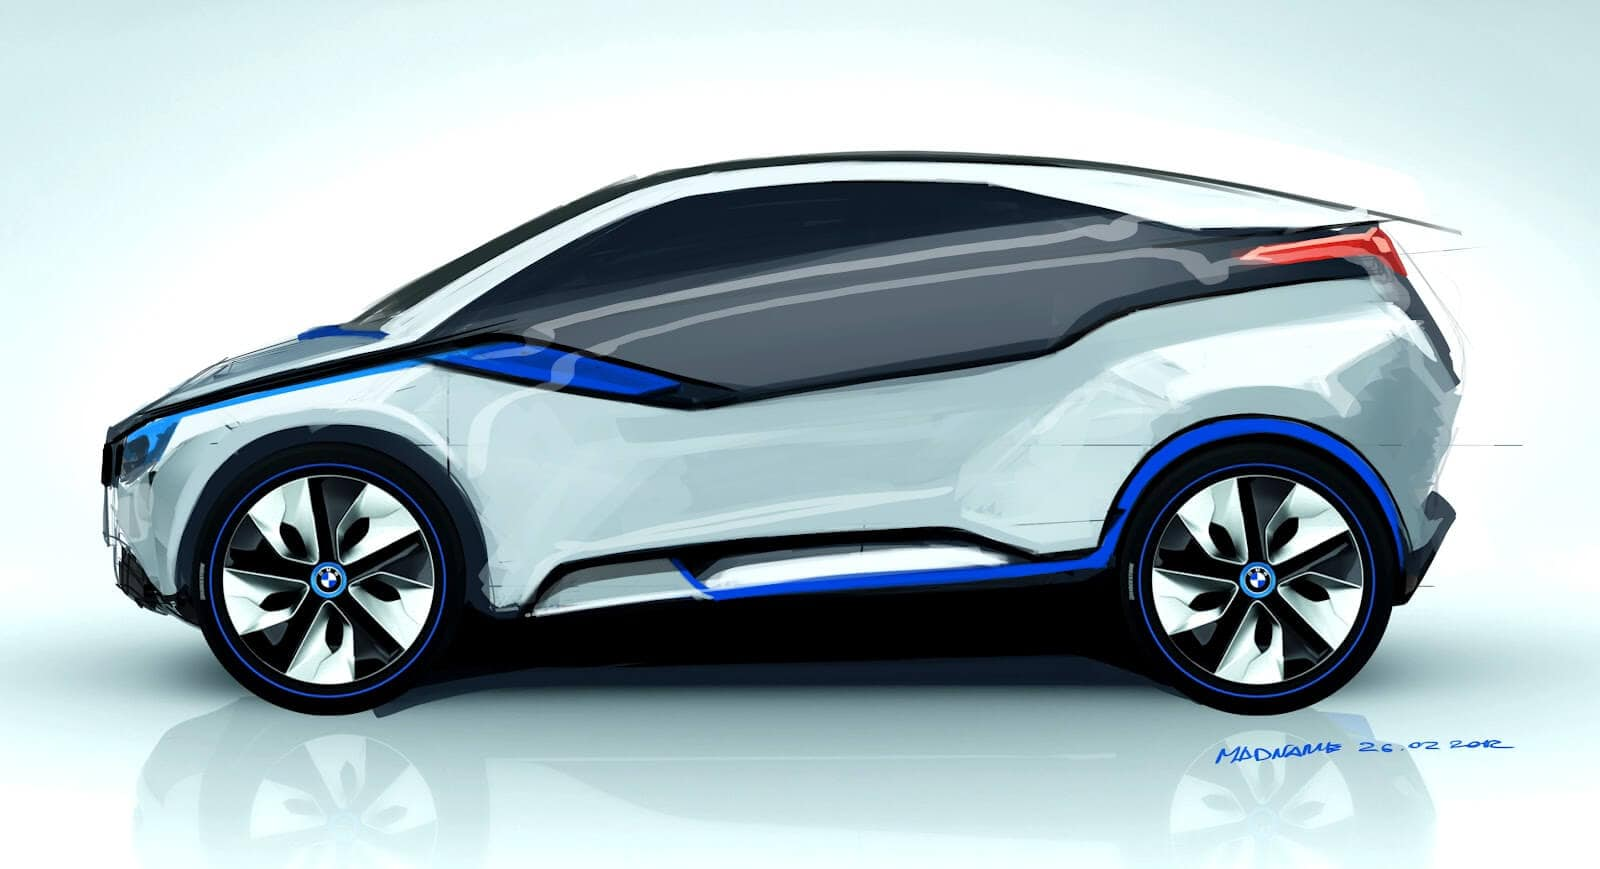 Reports: BMW's newest electric car to debut at LA Auto Show